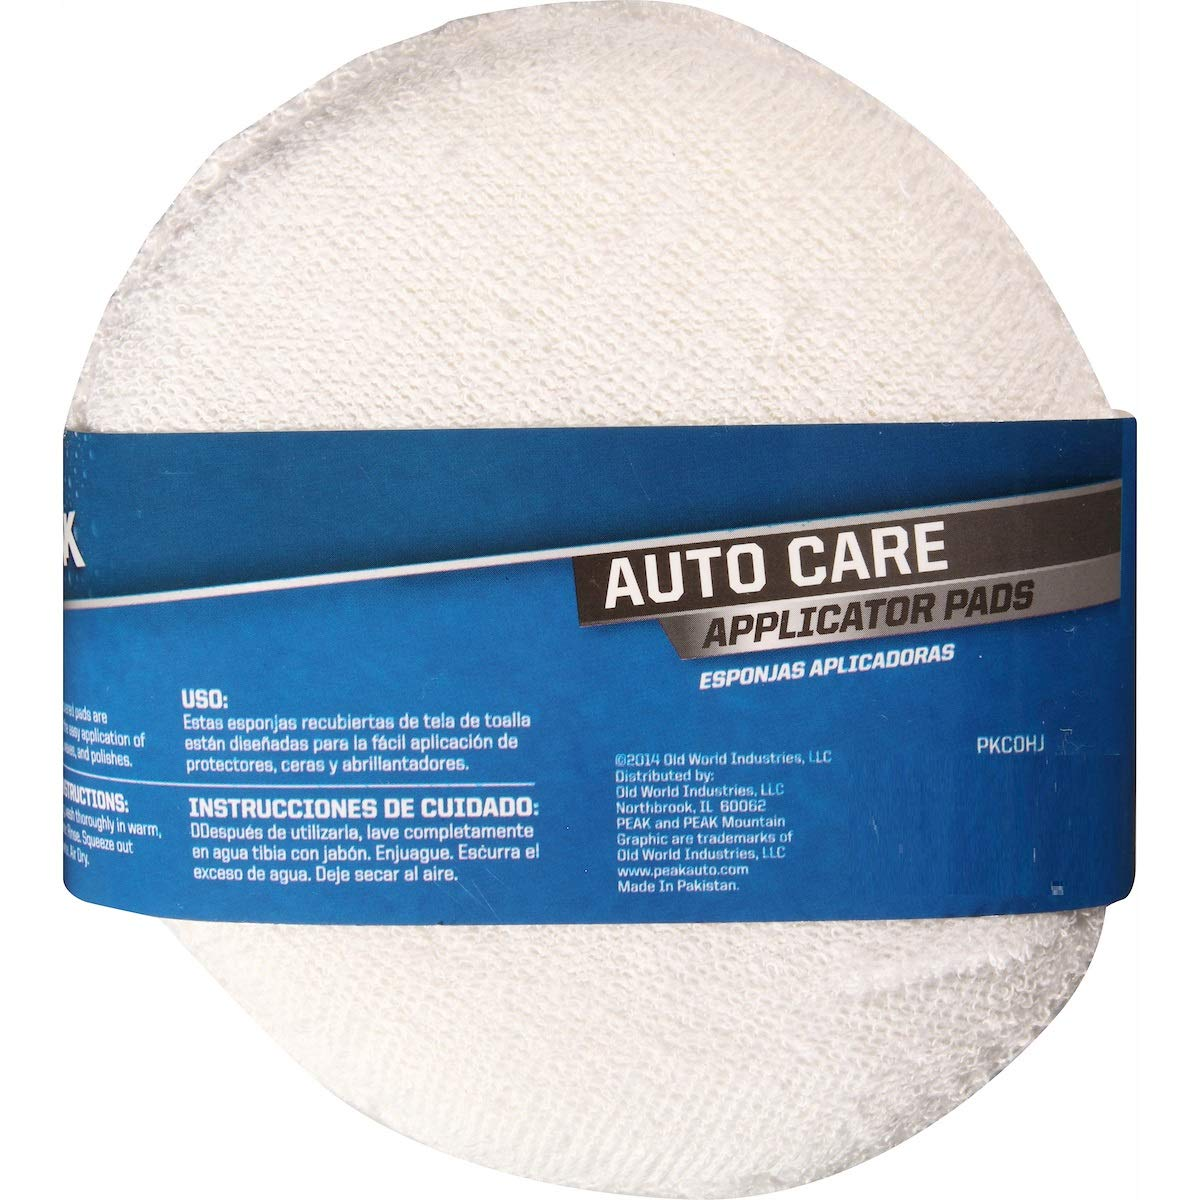 Amazon.com: PEAK Microfiber Auto Care Applicator Pads, 2 Pack: Automotive